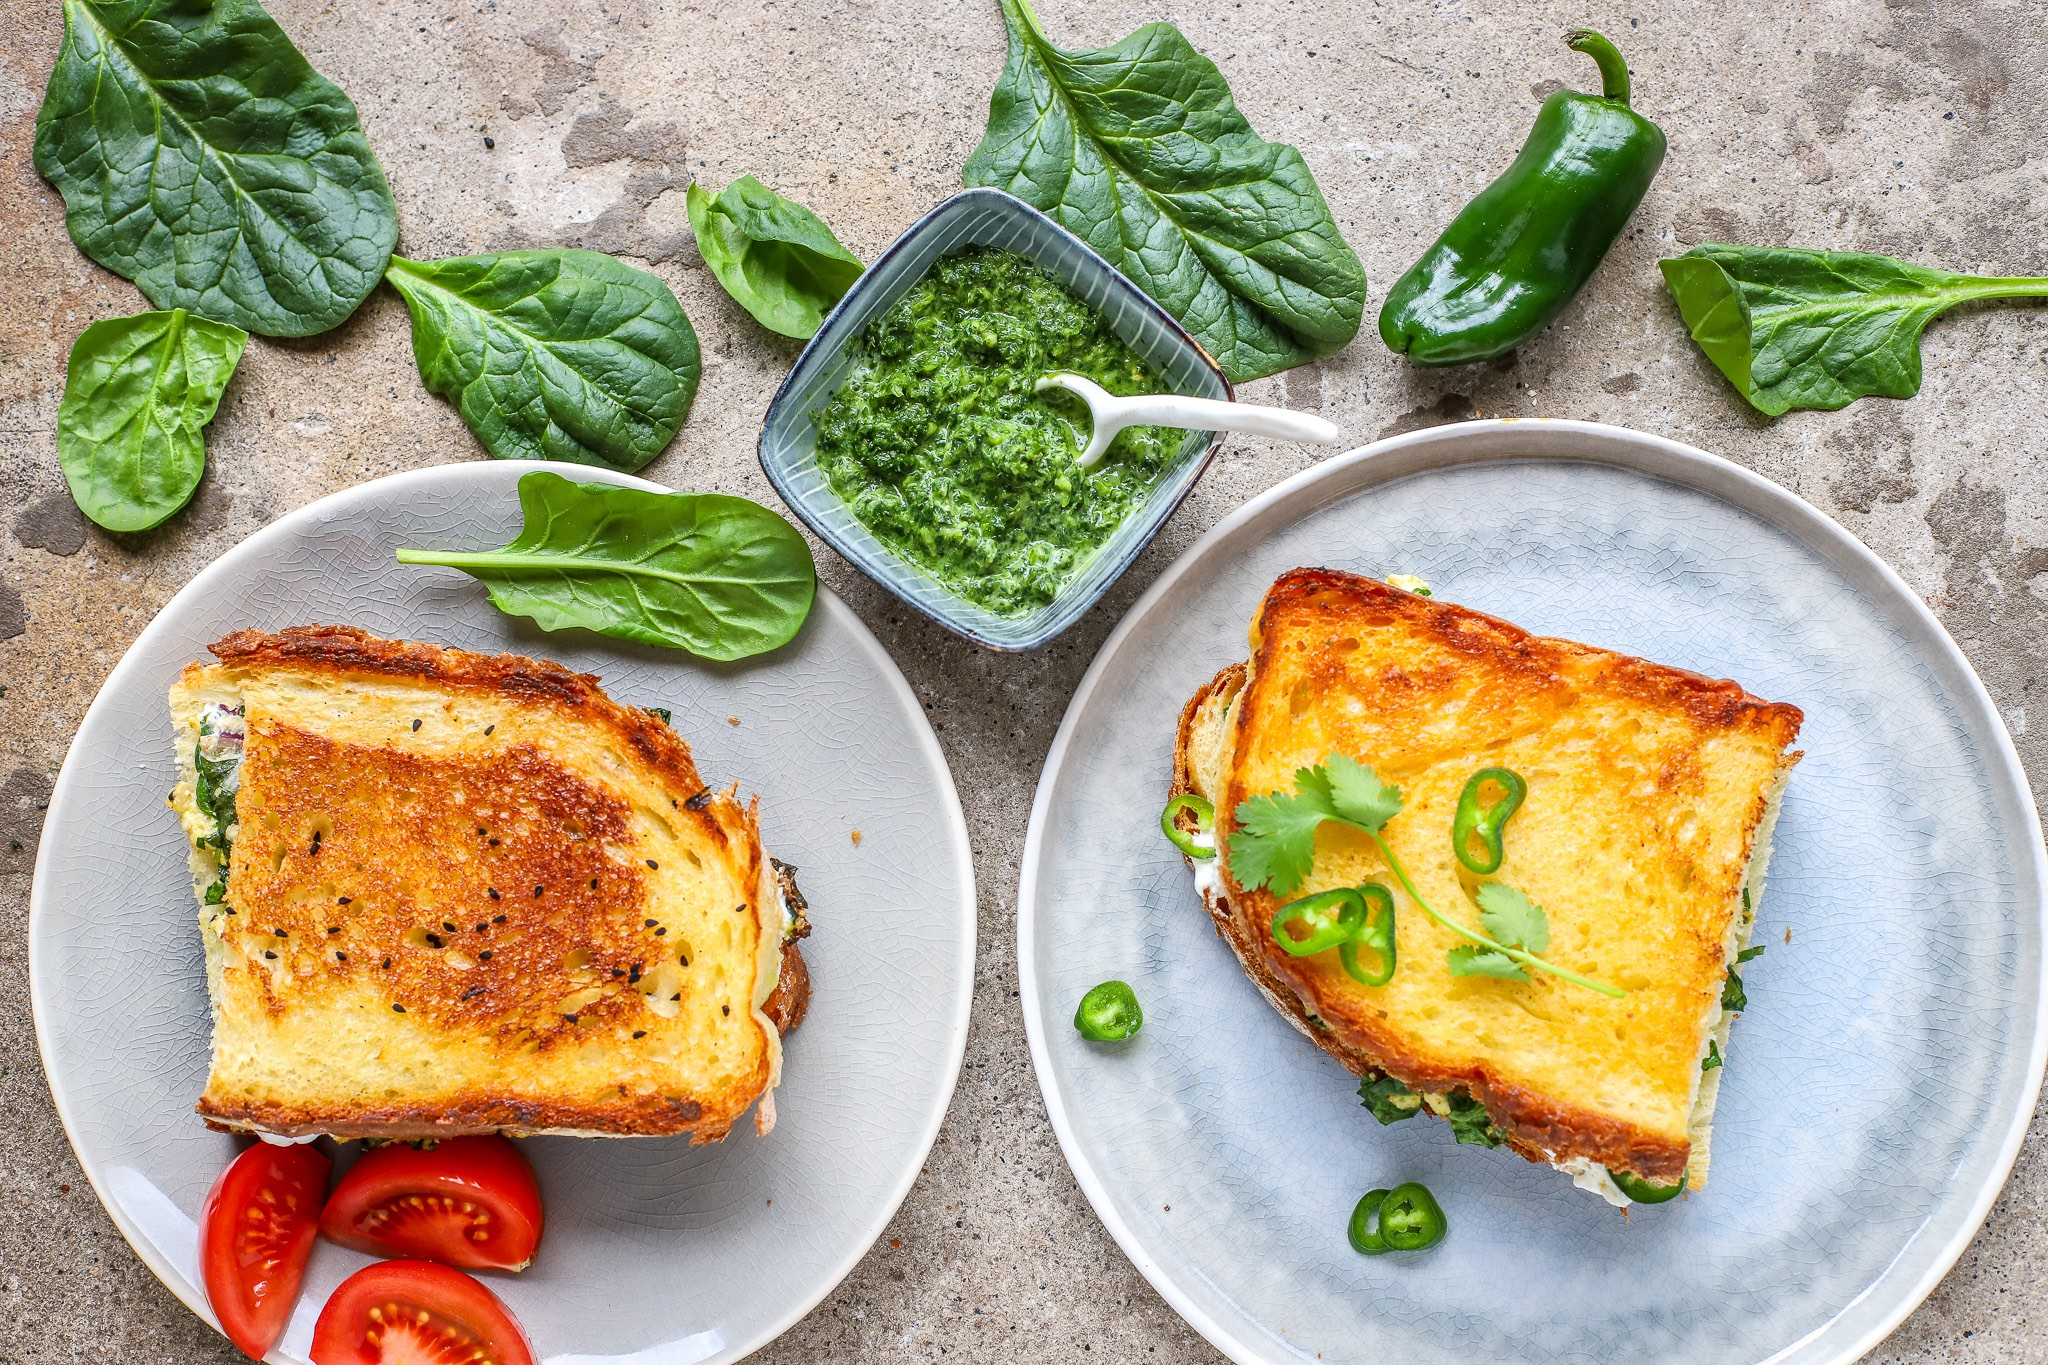 sliced grilled cheese sandwich with paneer and spinach on plates with green chillies and spinach leaves surrounding them.